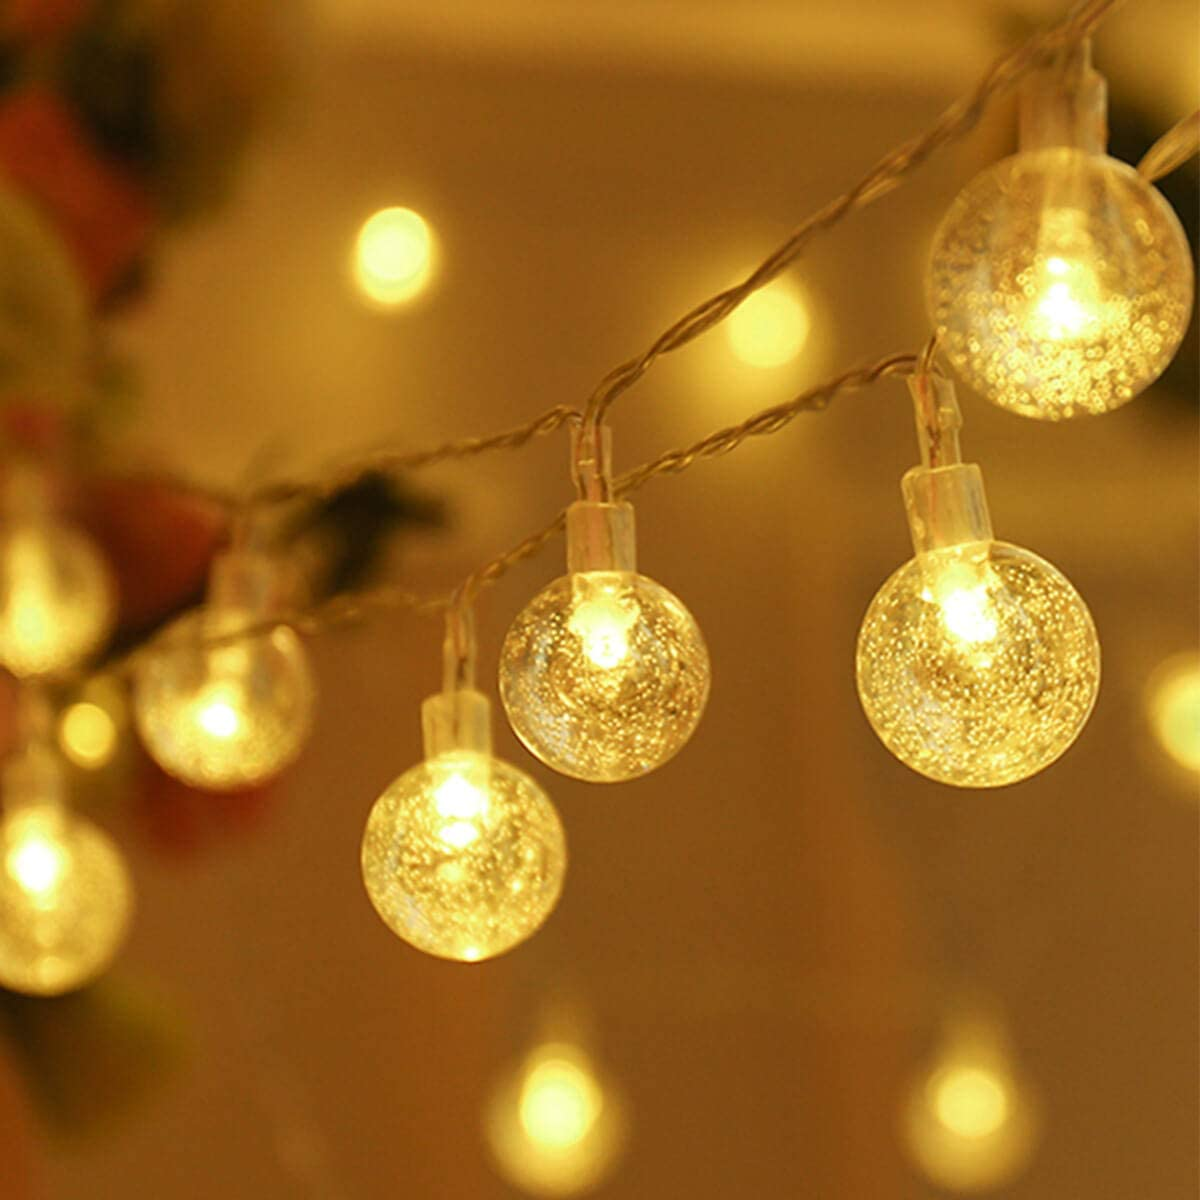 ALOVECO Battery Operated LED String Lights, 2Packs 14.8ft 40 Globe String Lights,Waterproof Indoor Outdoor Ball Fairy String Lights, 8 Modes Decorative Lighting for Bedroom, Garden, Party(Warm Color)